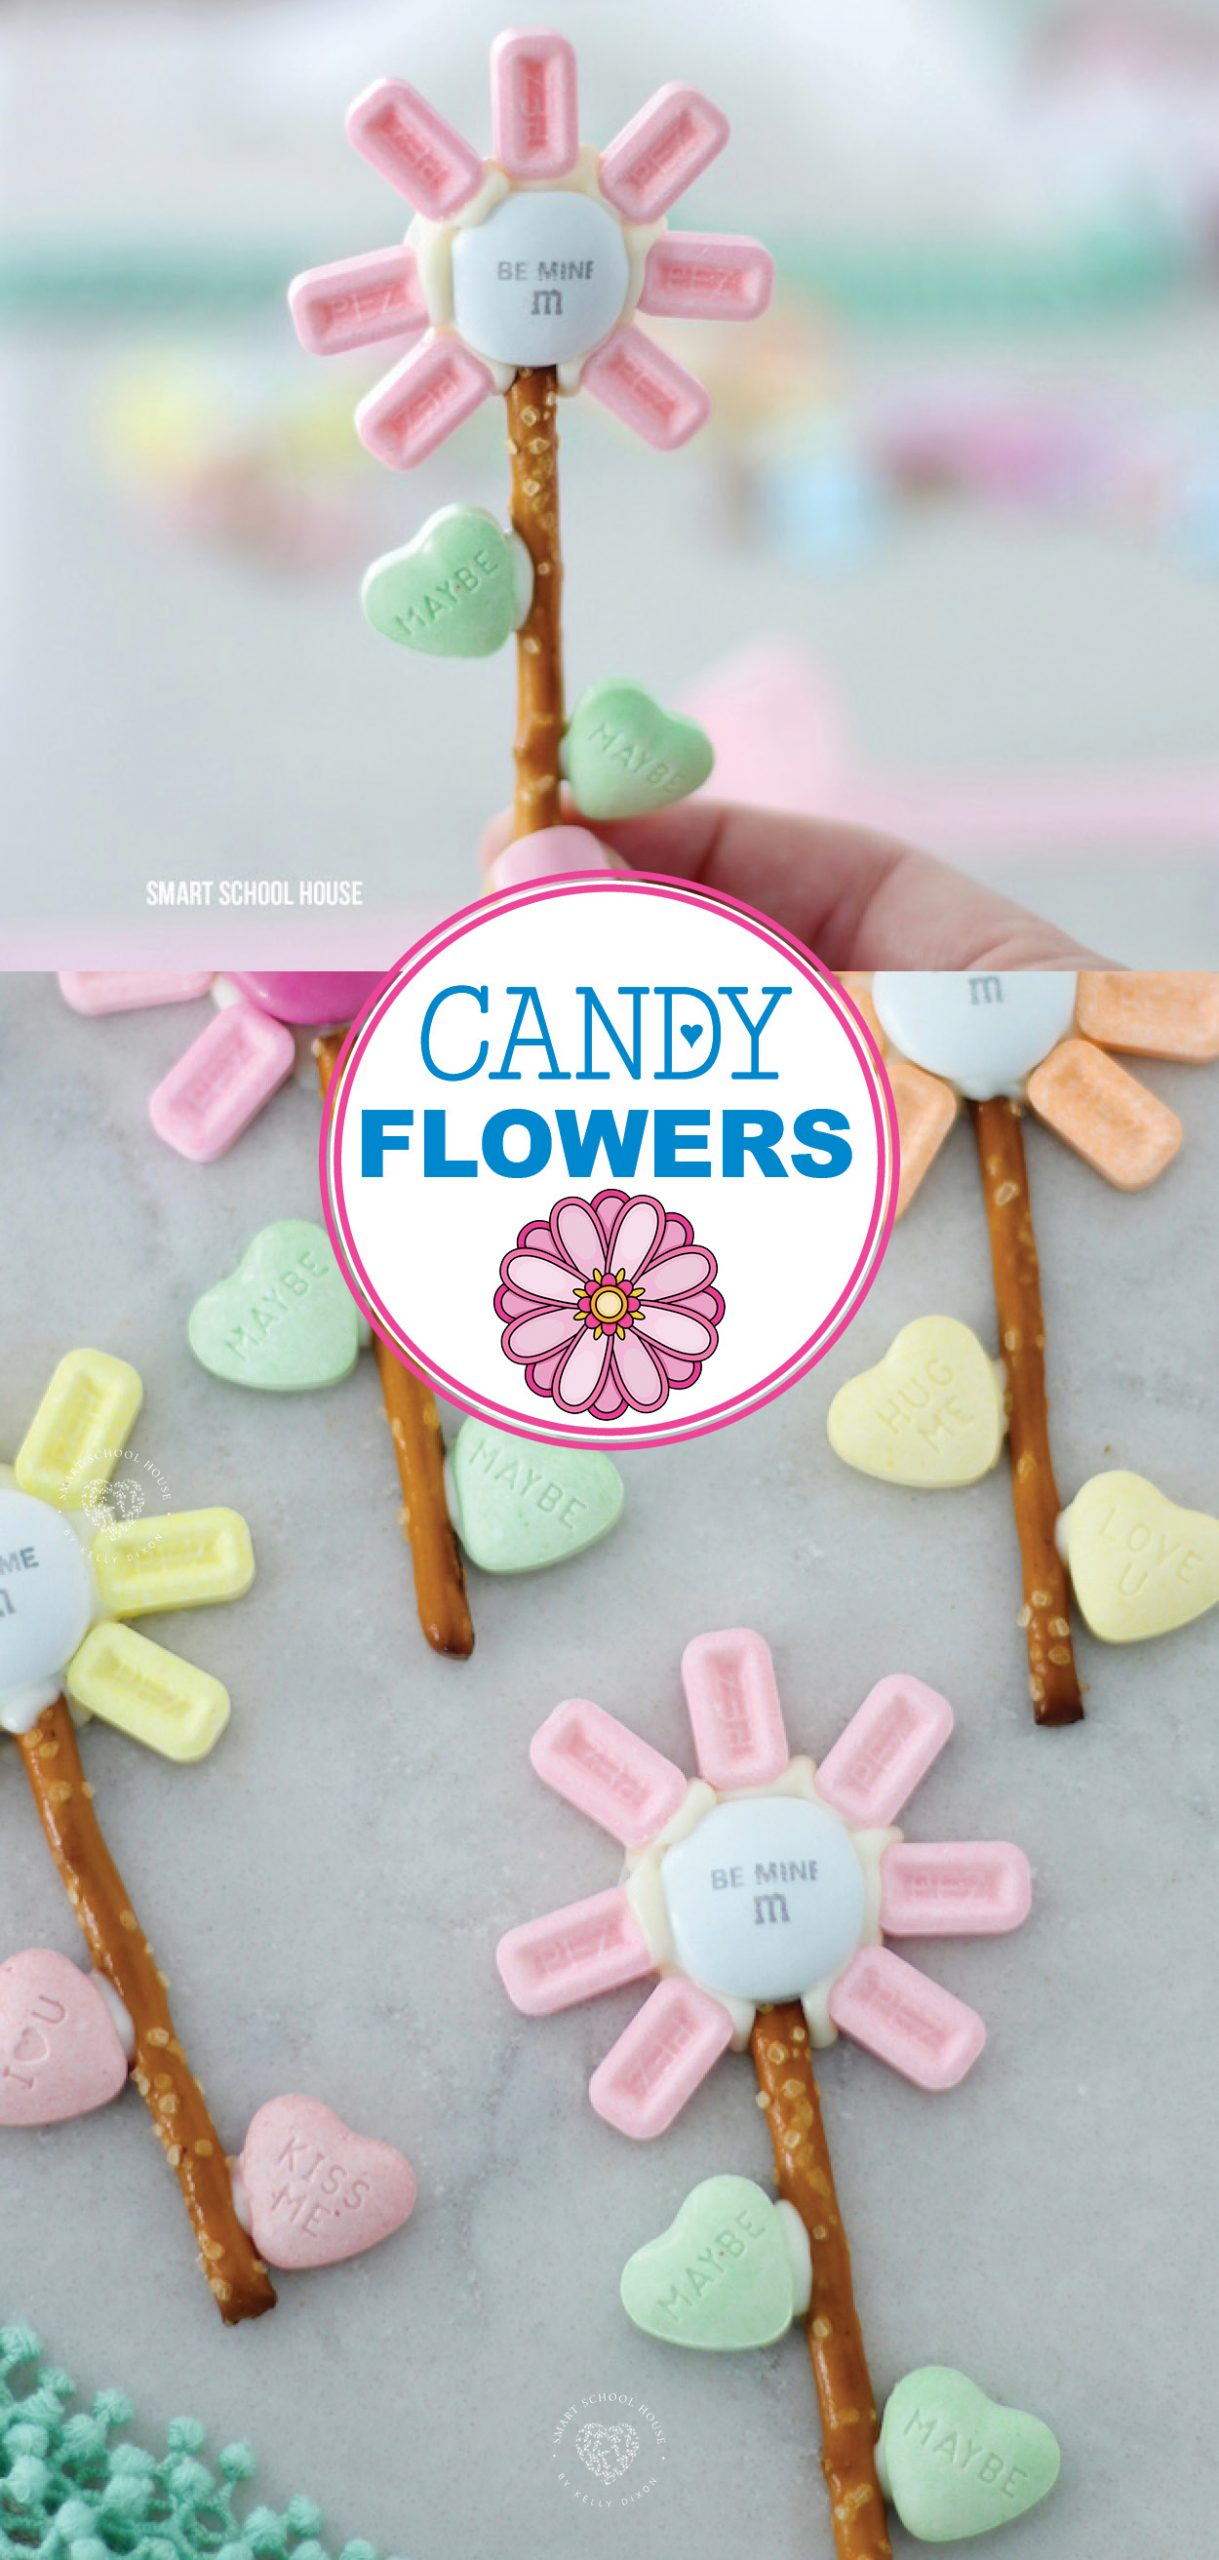 Candy Flowers! A DIY Valentine's Day idea.